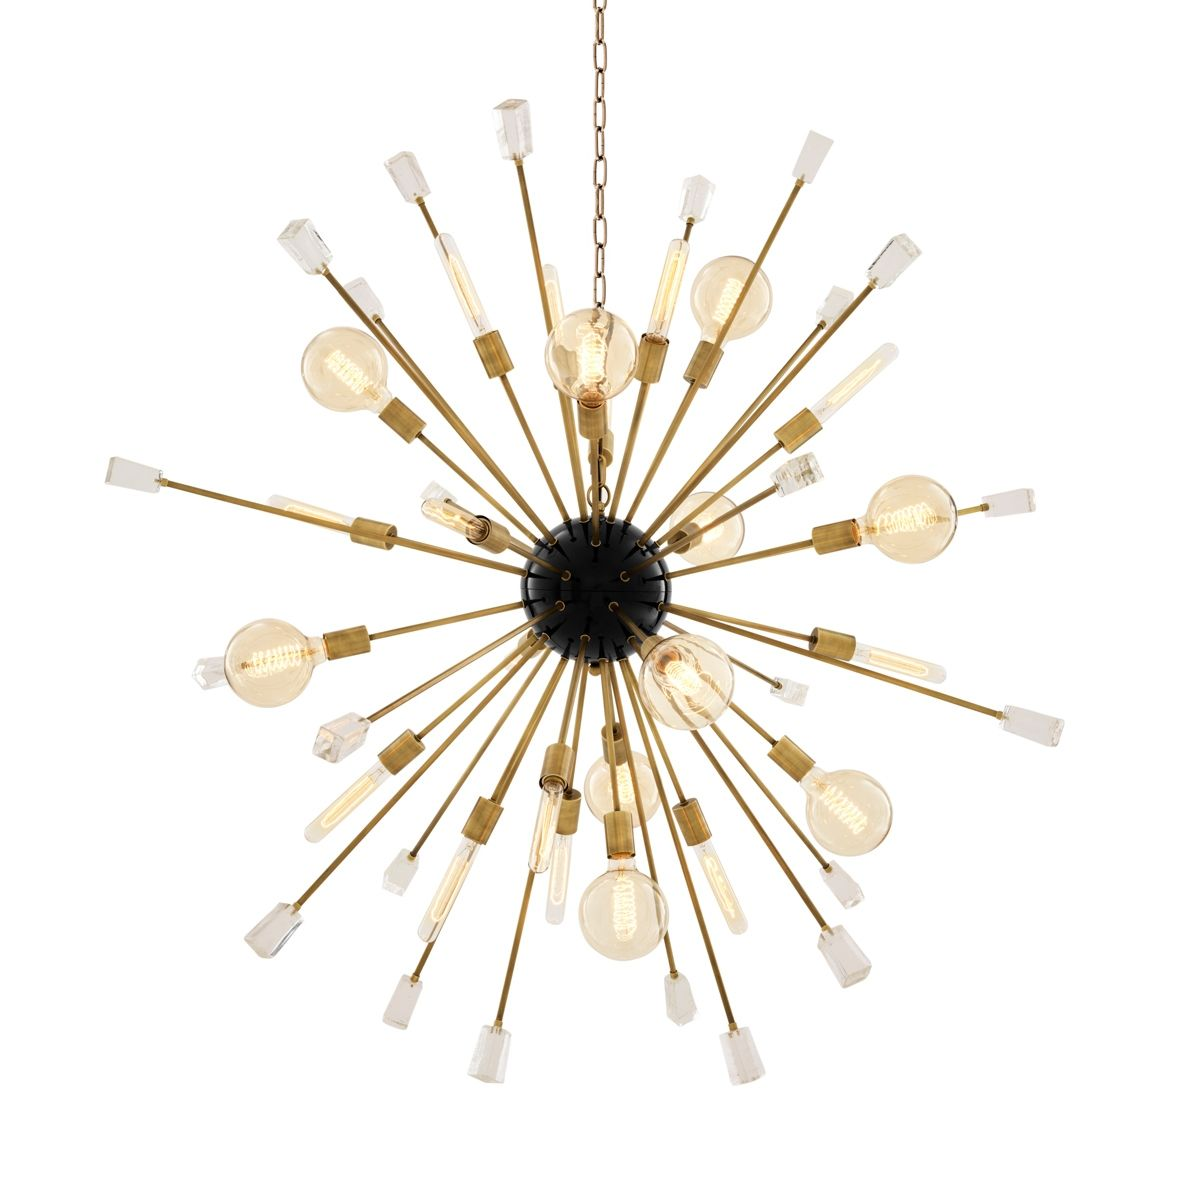 Pin by monica molbert on lighting pinterest contemporary buy eichholtz tivoli chandelier brass online with houseologys price promise full eichholtz collection with uk international shipping arubaitofo Image collections